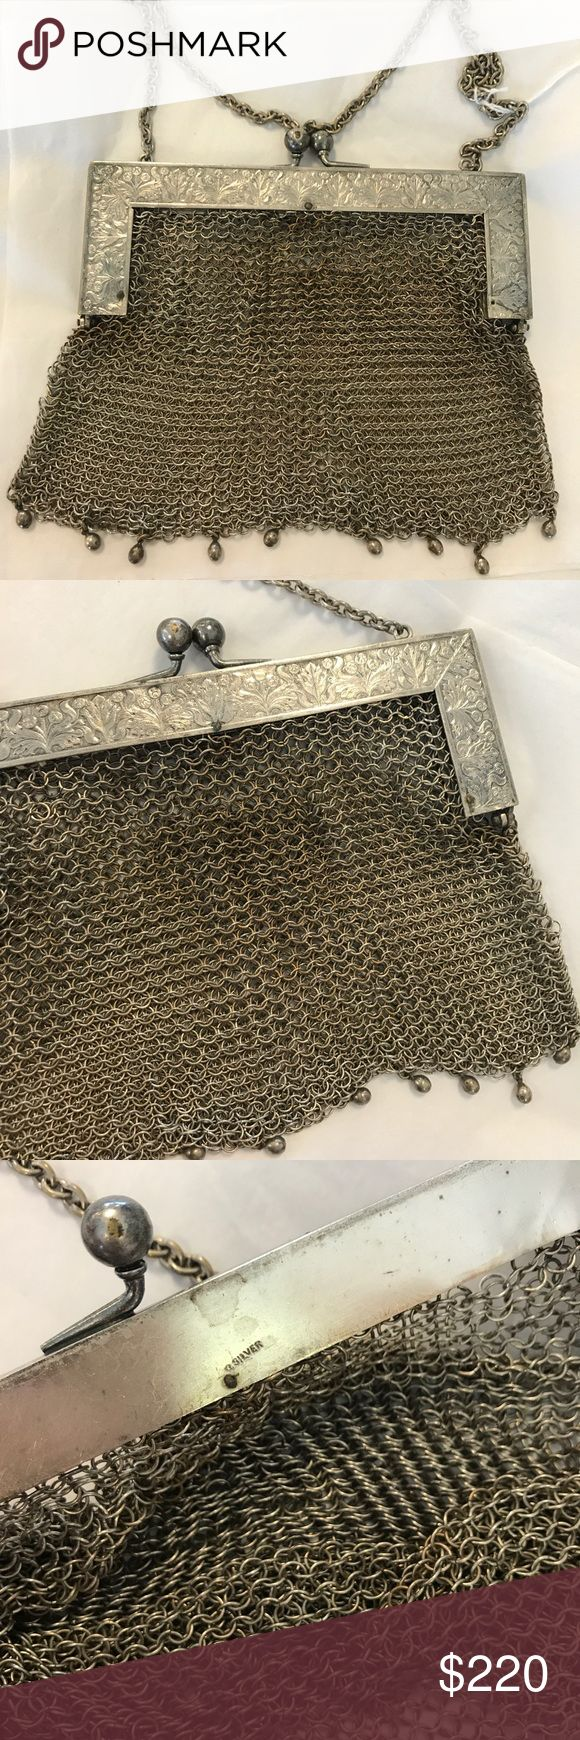 Antique Real Silver Joan of Arc Mesh Chain Purse Wowzer! So amazing. No links missing. Stamped inside SILVER. Art Deco design on top. Most likely metal circles. Mini handbag. Old. Collectible. Turn of the century. Mini beaded tassels across the bottom. Heavy weight. S000059588875213 Vintage Bags Mini Bags